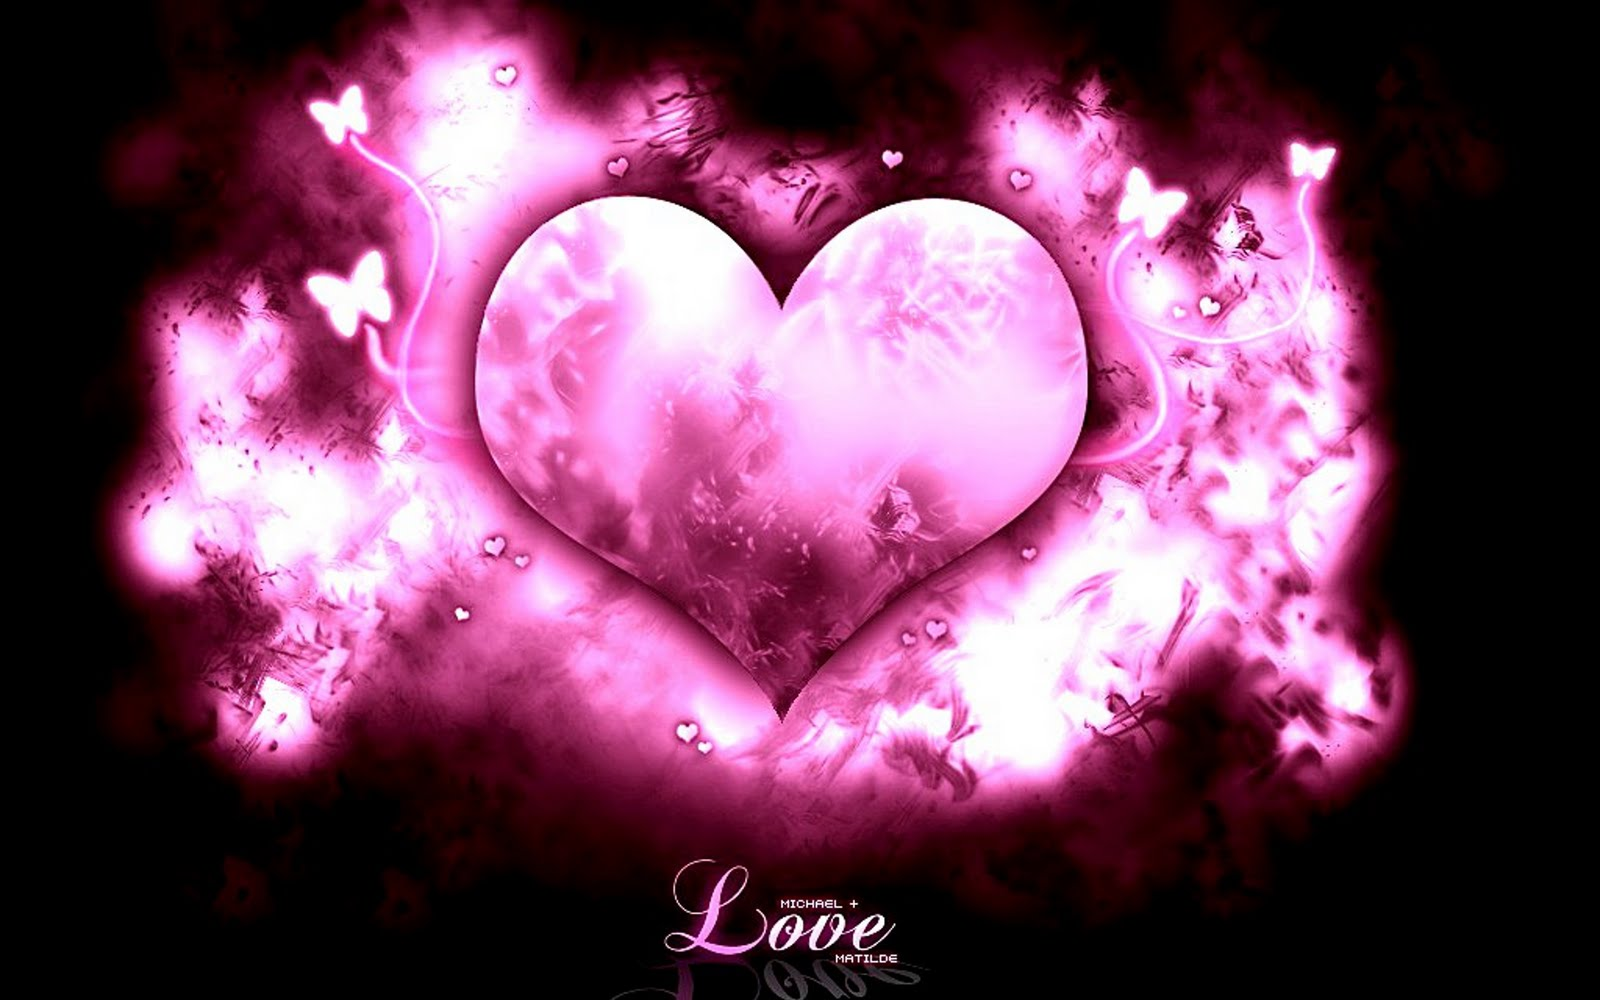 Backgrounds Cute Heart and Love Wallpapers with Different Backgrounds 1600x1000